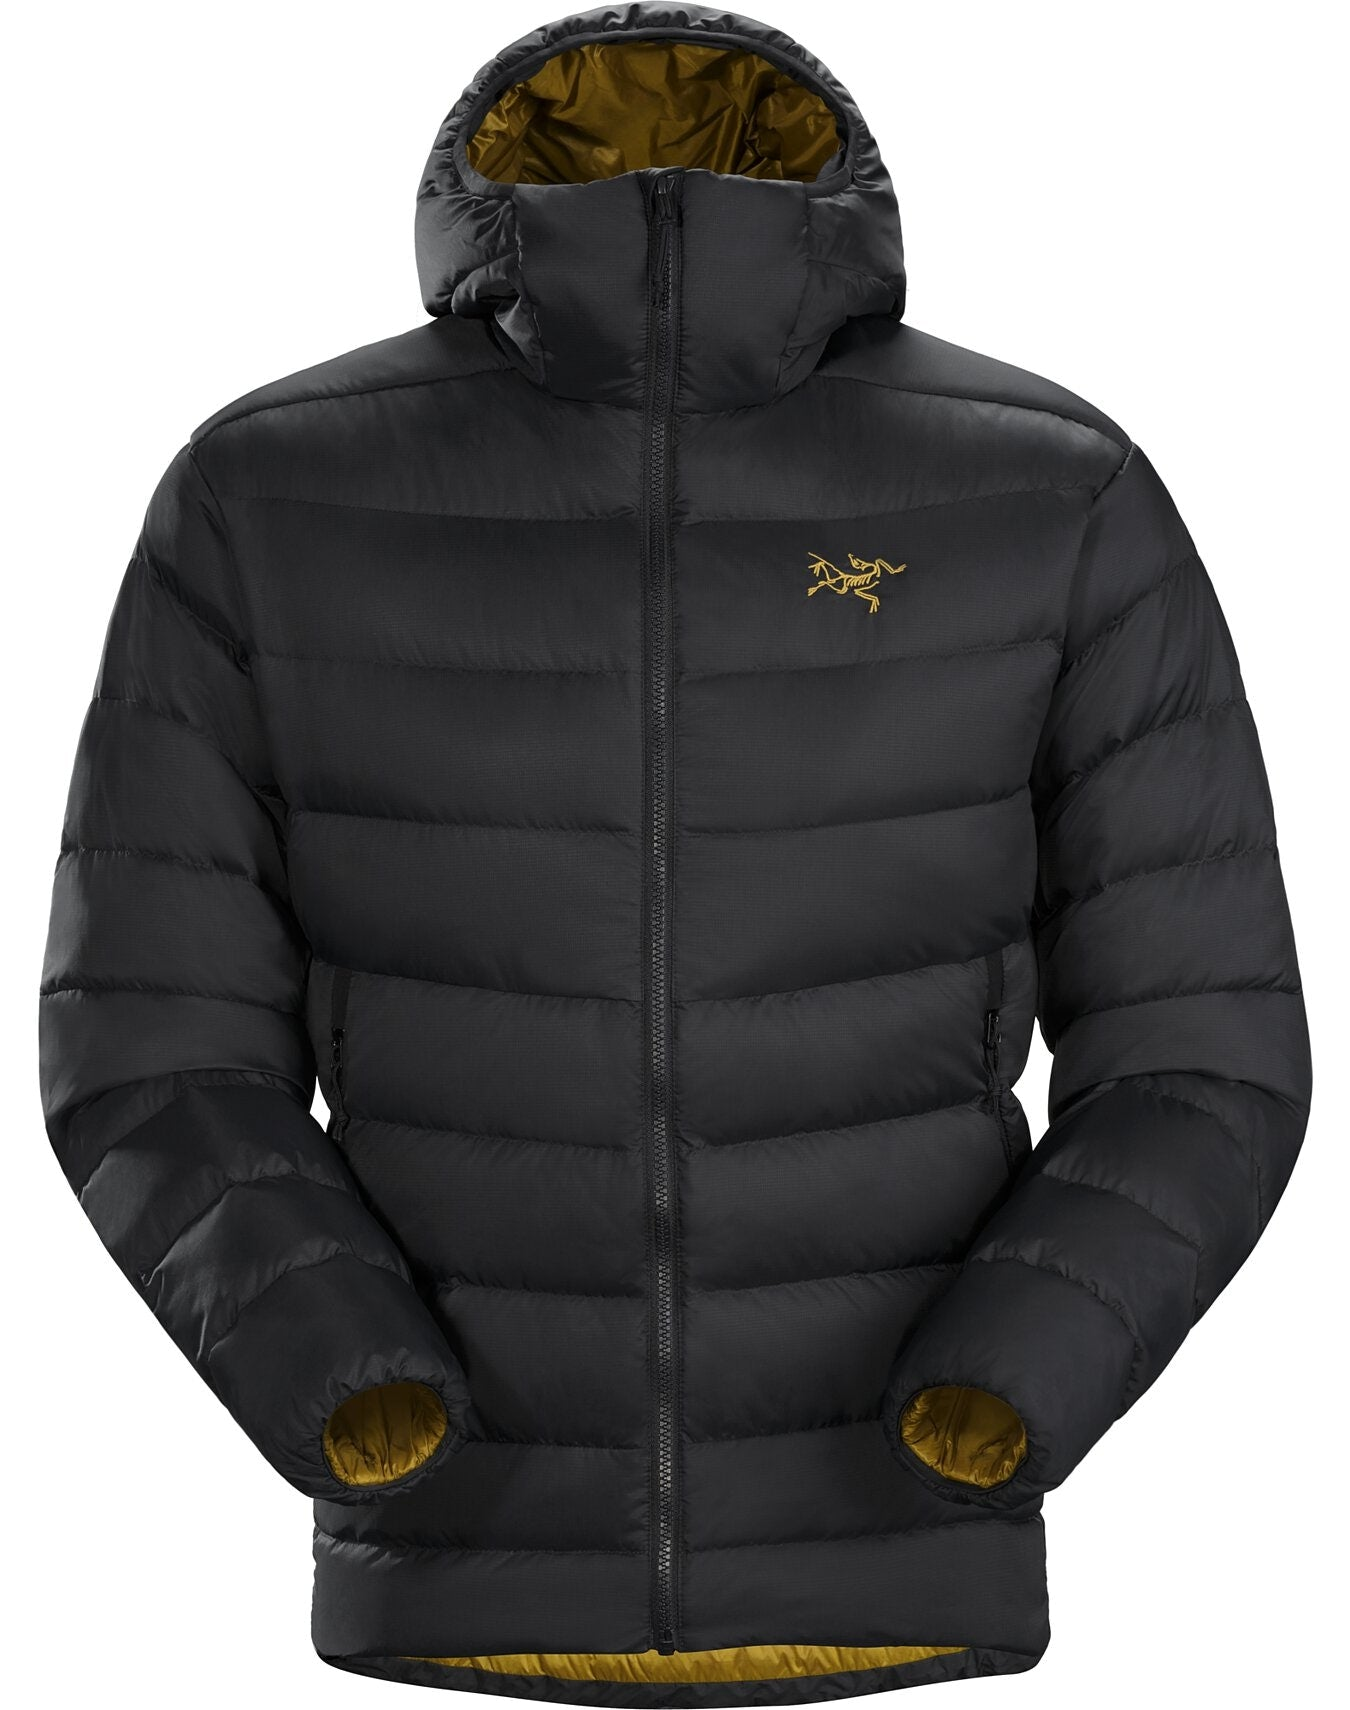 Arcteryx Thorium AR Hoody (Men's) - Find Your Feet Australia Hobart Launceston Tasmania